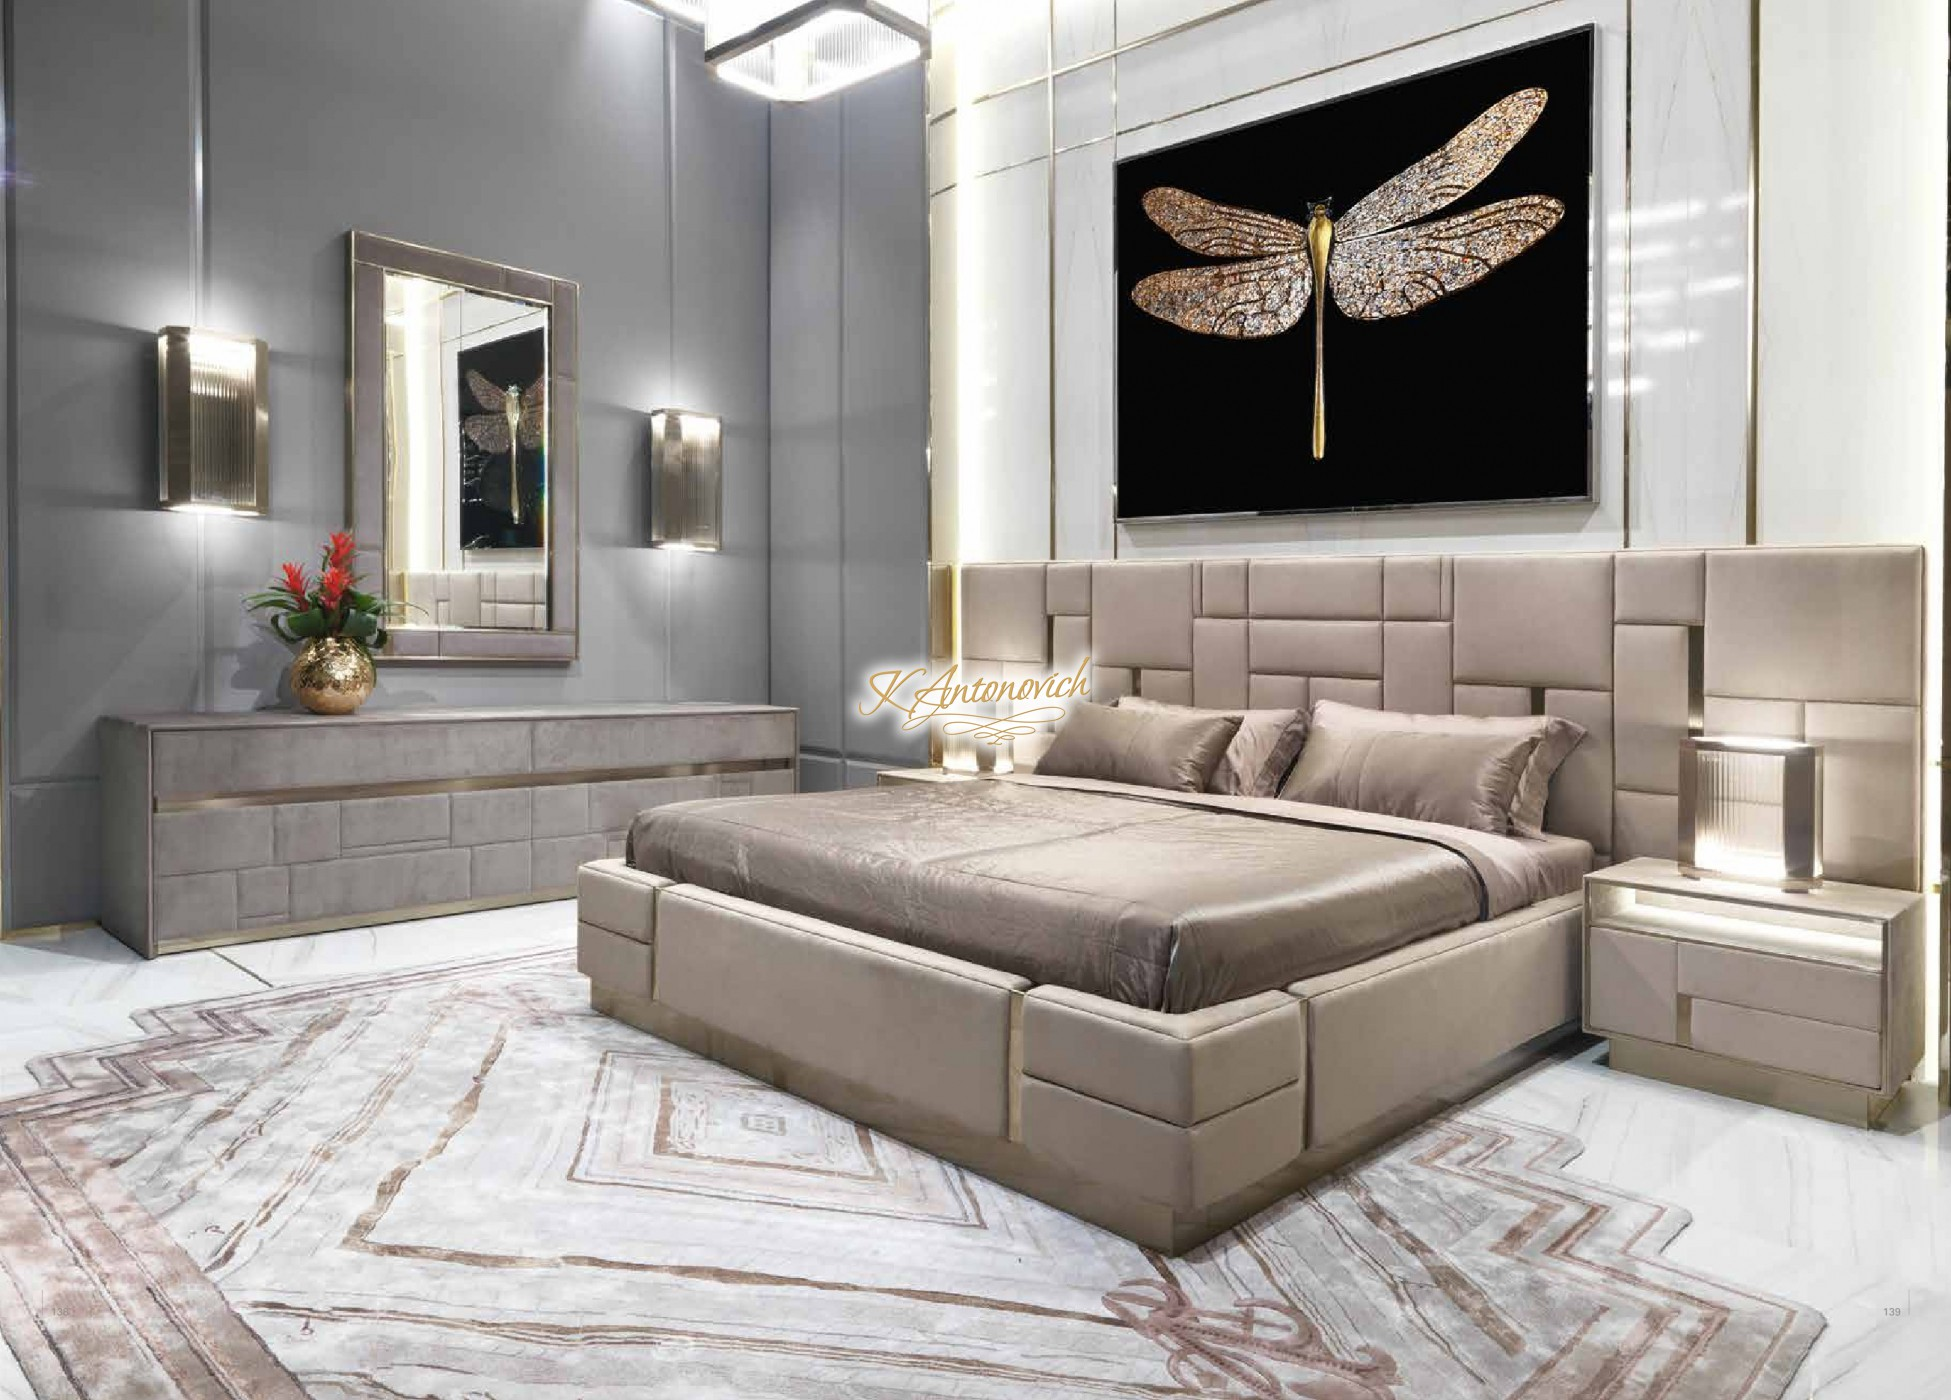 Distinct contemporary and exquisitely made in italy the visionnaire brand offers a vast collection of luxury furniture for the most discerning clientele